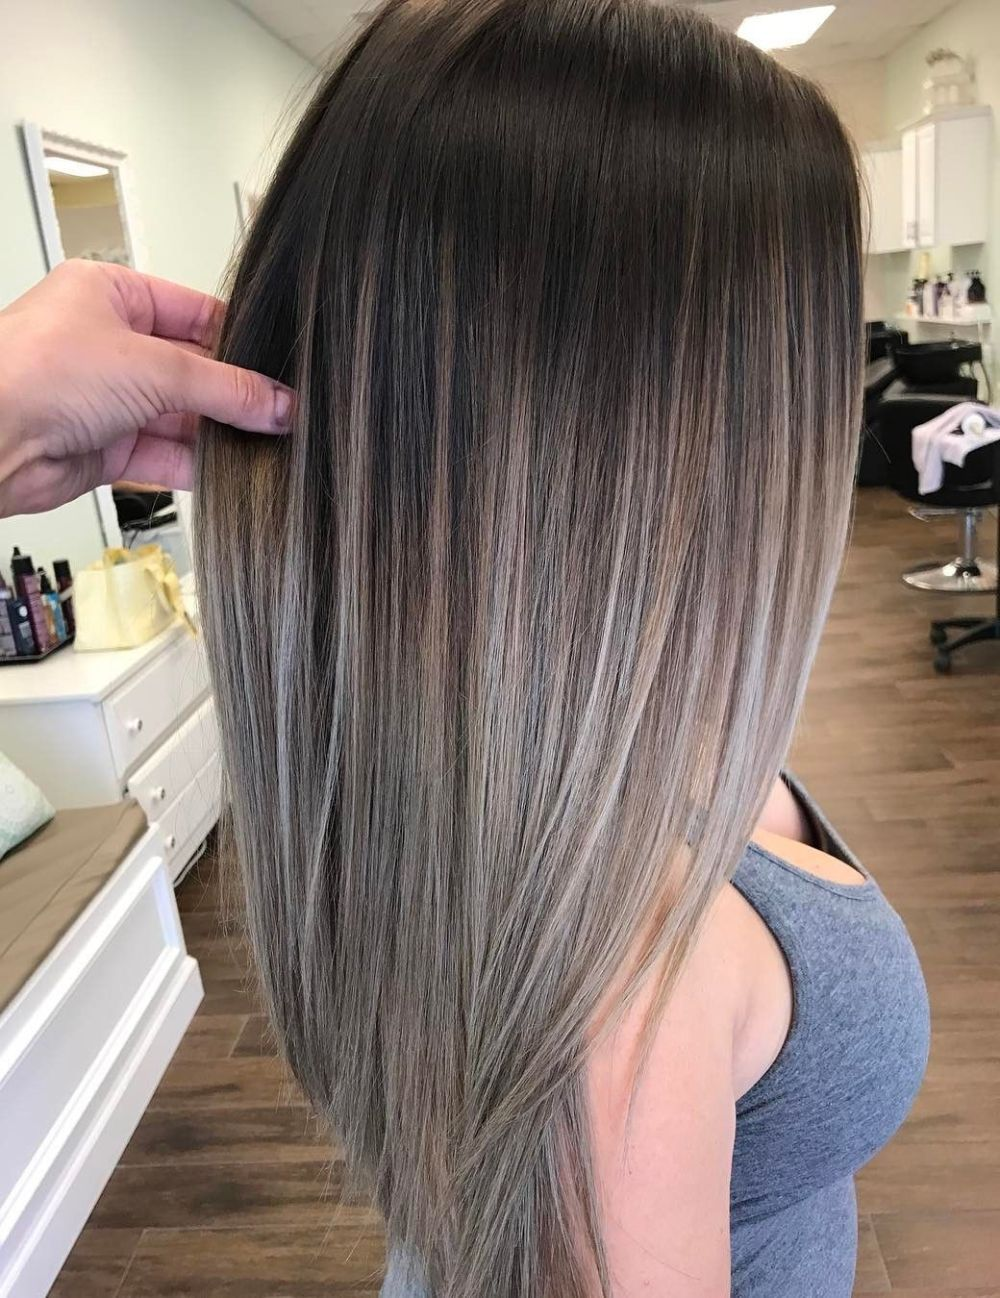 70 Flattering Balayage Hair Color Ideas For 2020 Balayage Hair Brunette Hair Color Hair Color Techniques